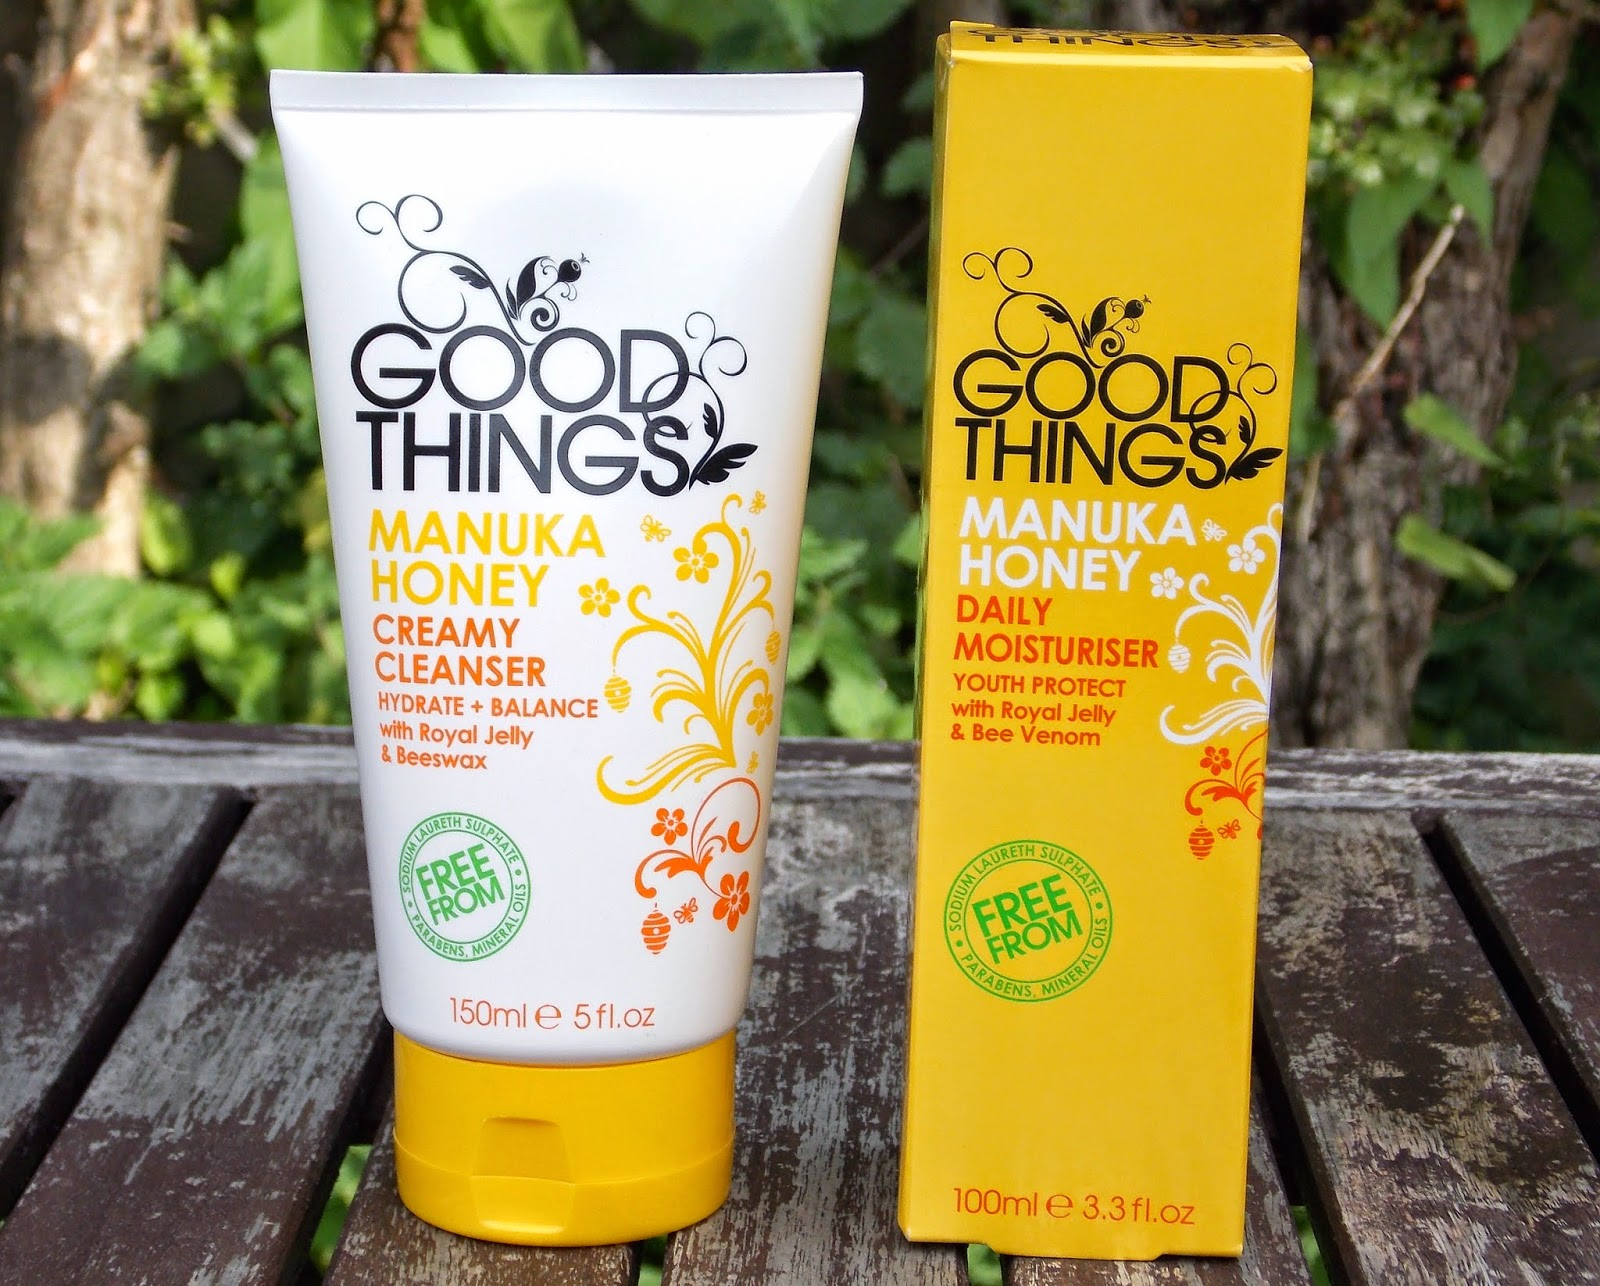 Good Things Manuka Honey Creamy Cleanser and Good Things Manuka Honey Daily Moisturiser